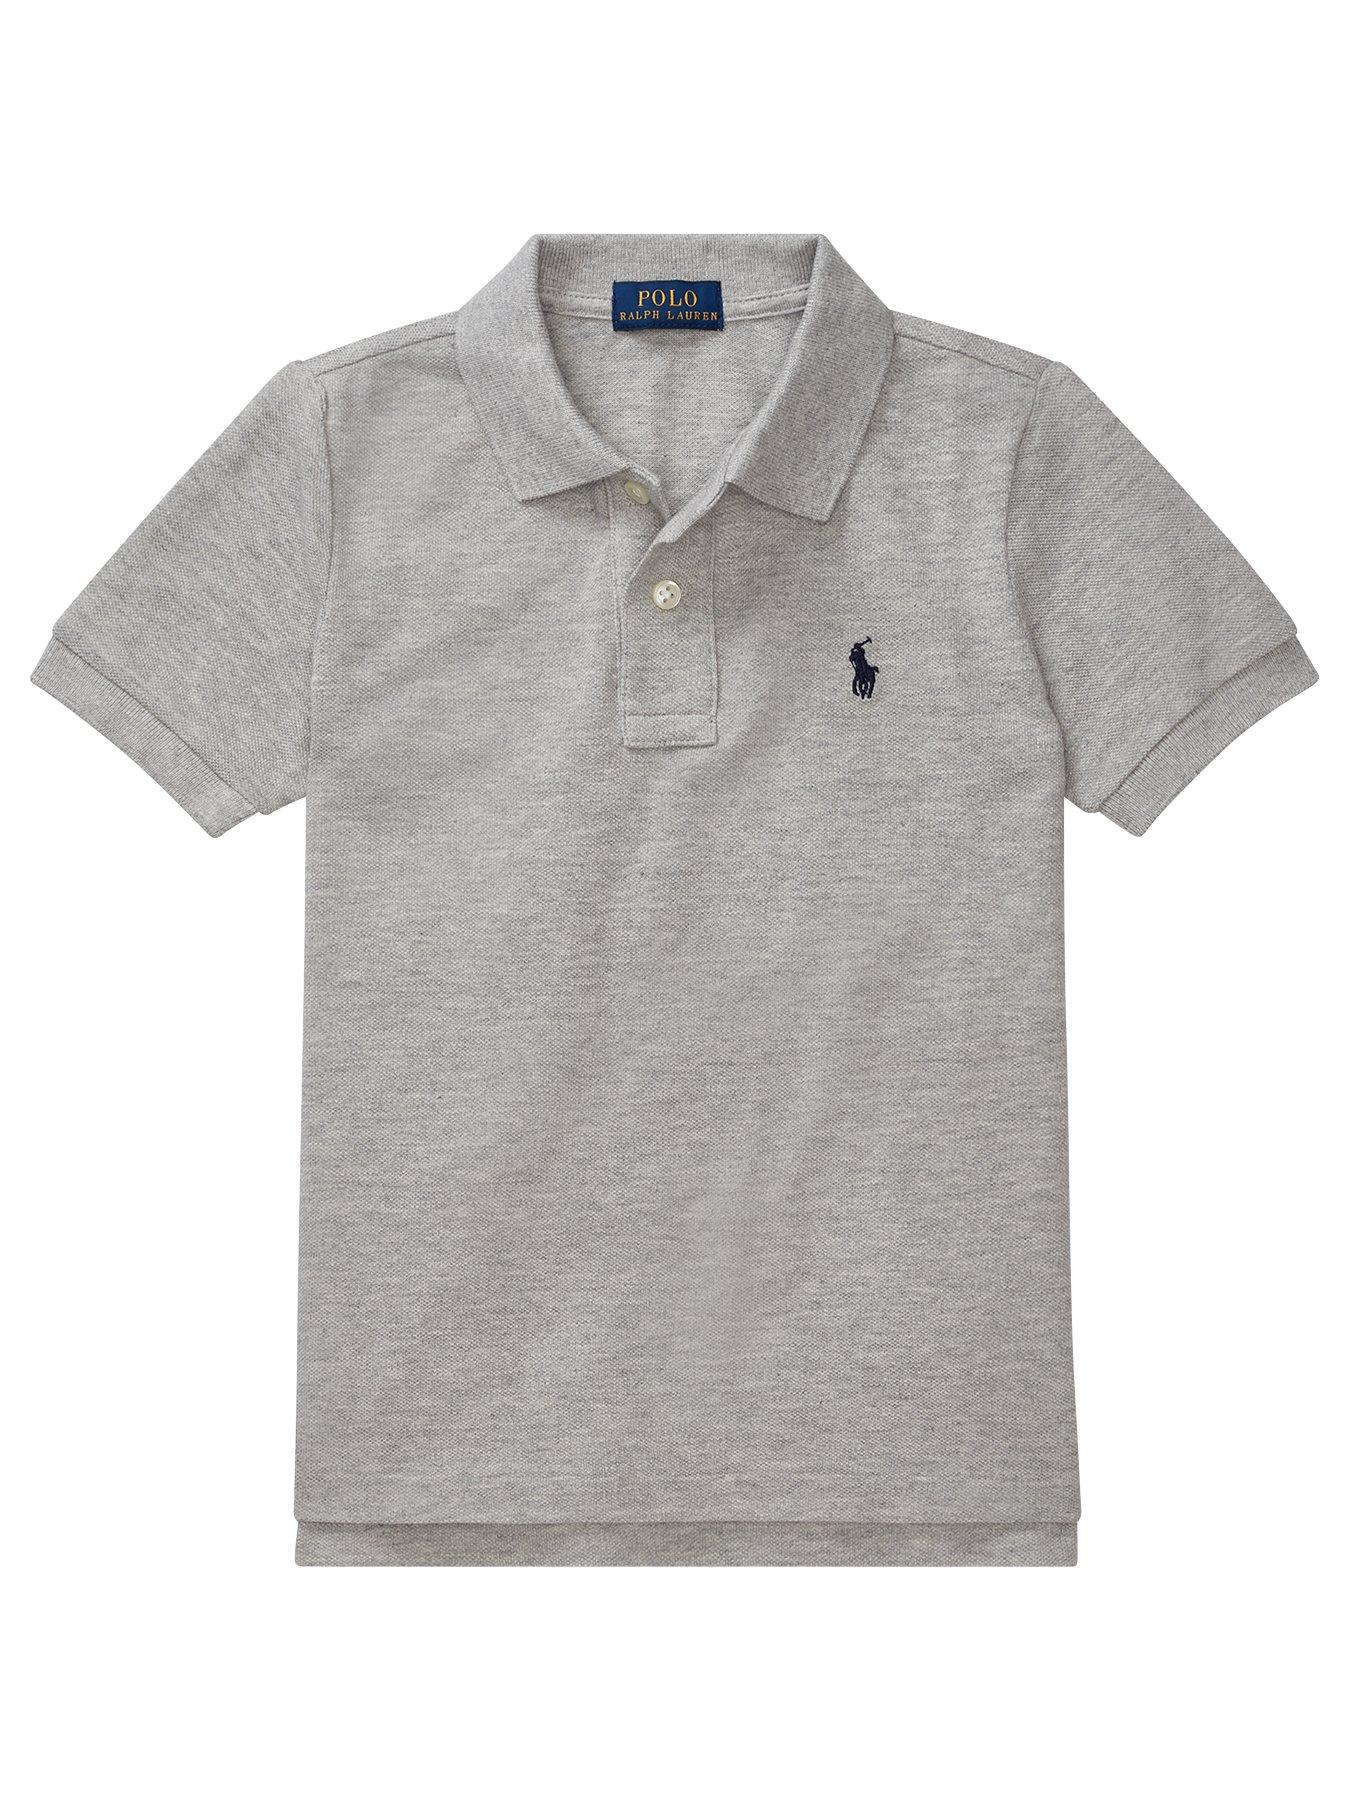 Boys Polo Sport Ralph Lauren Trail Runner Short Sleeve Athletic Shirt